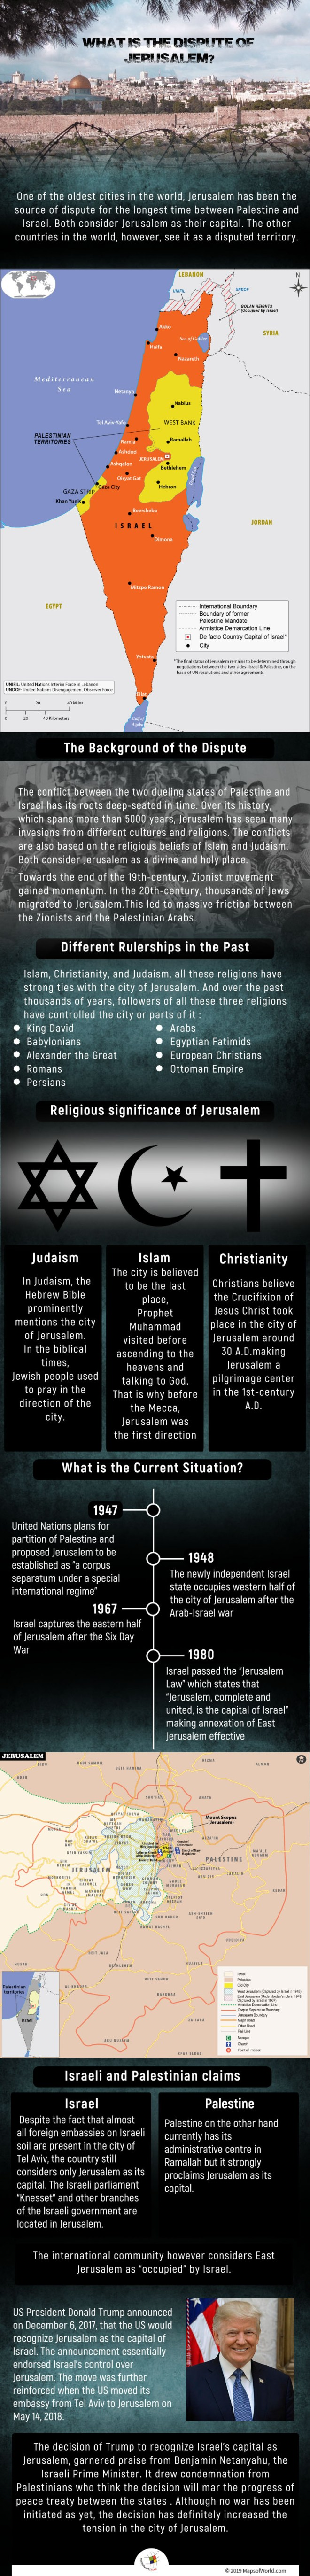 Infographic Giving Details on The Dispute of Jerusalem